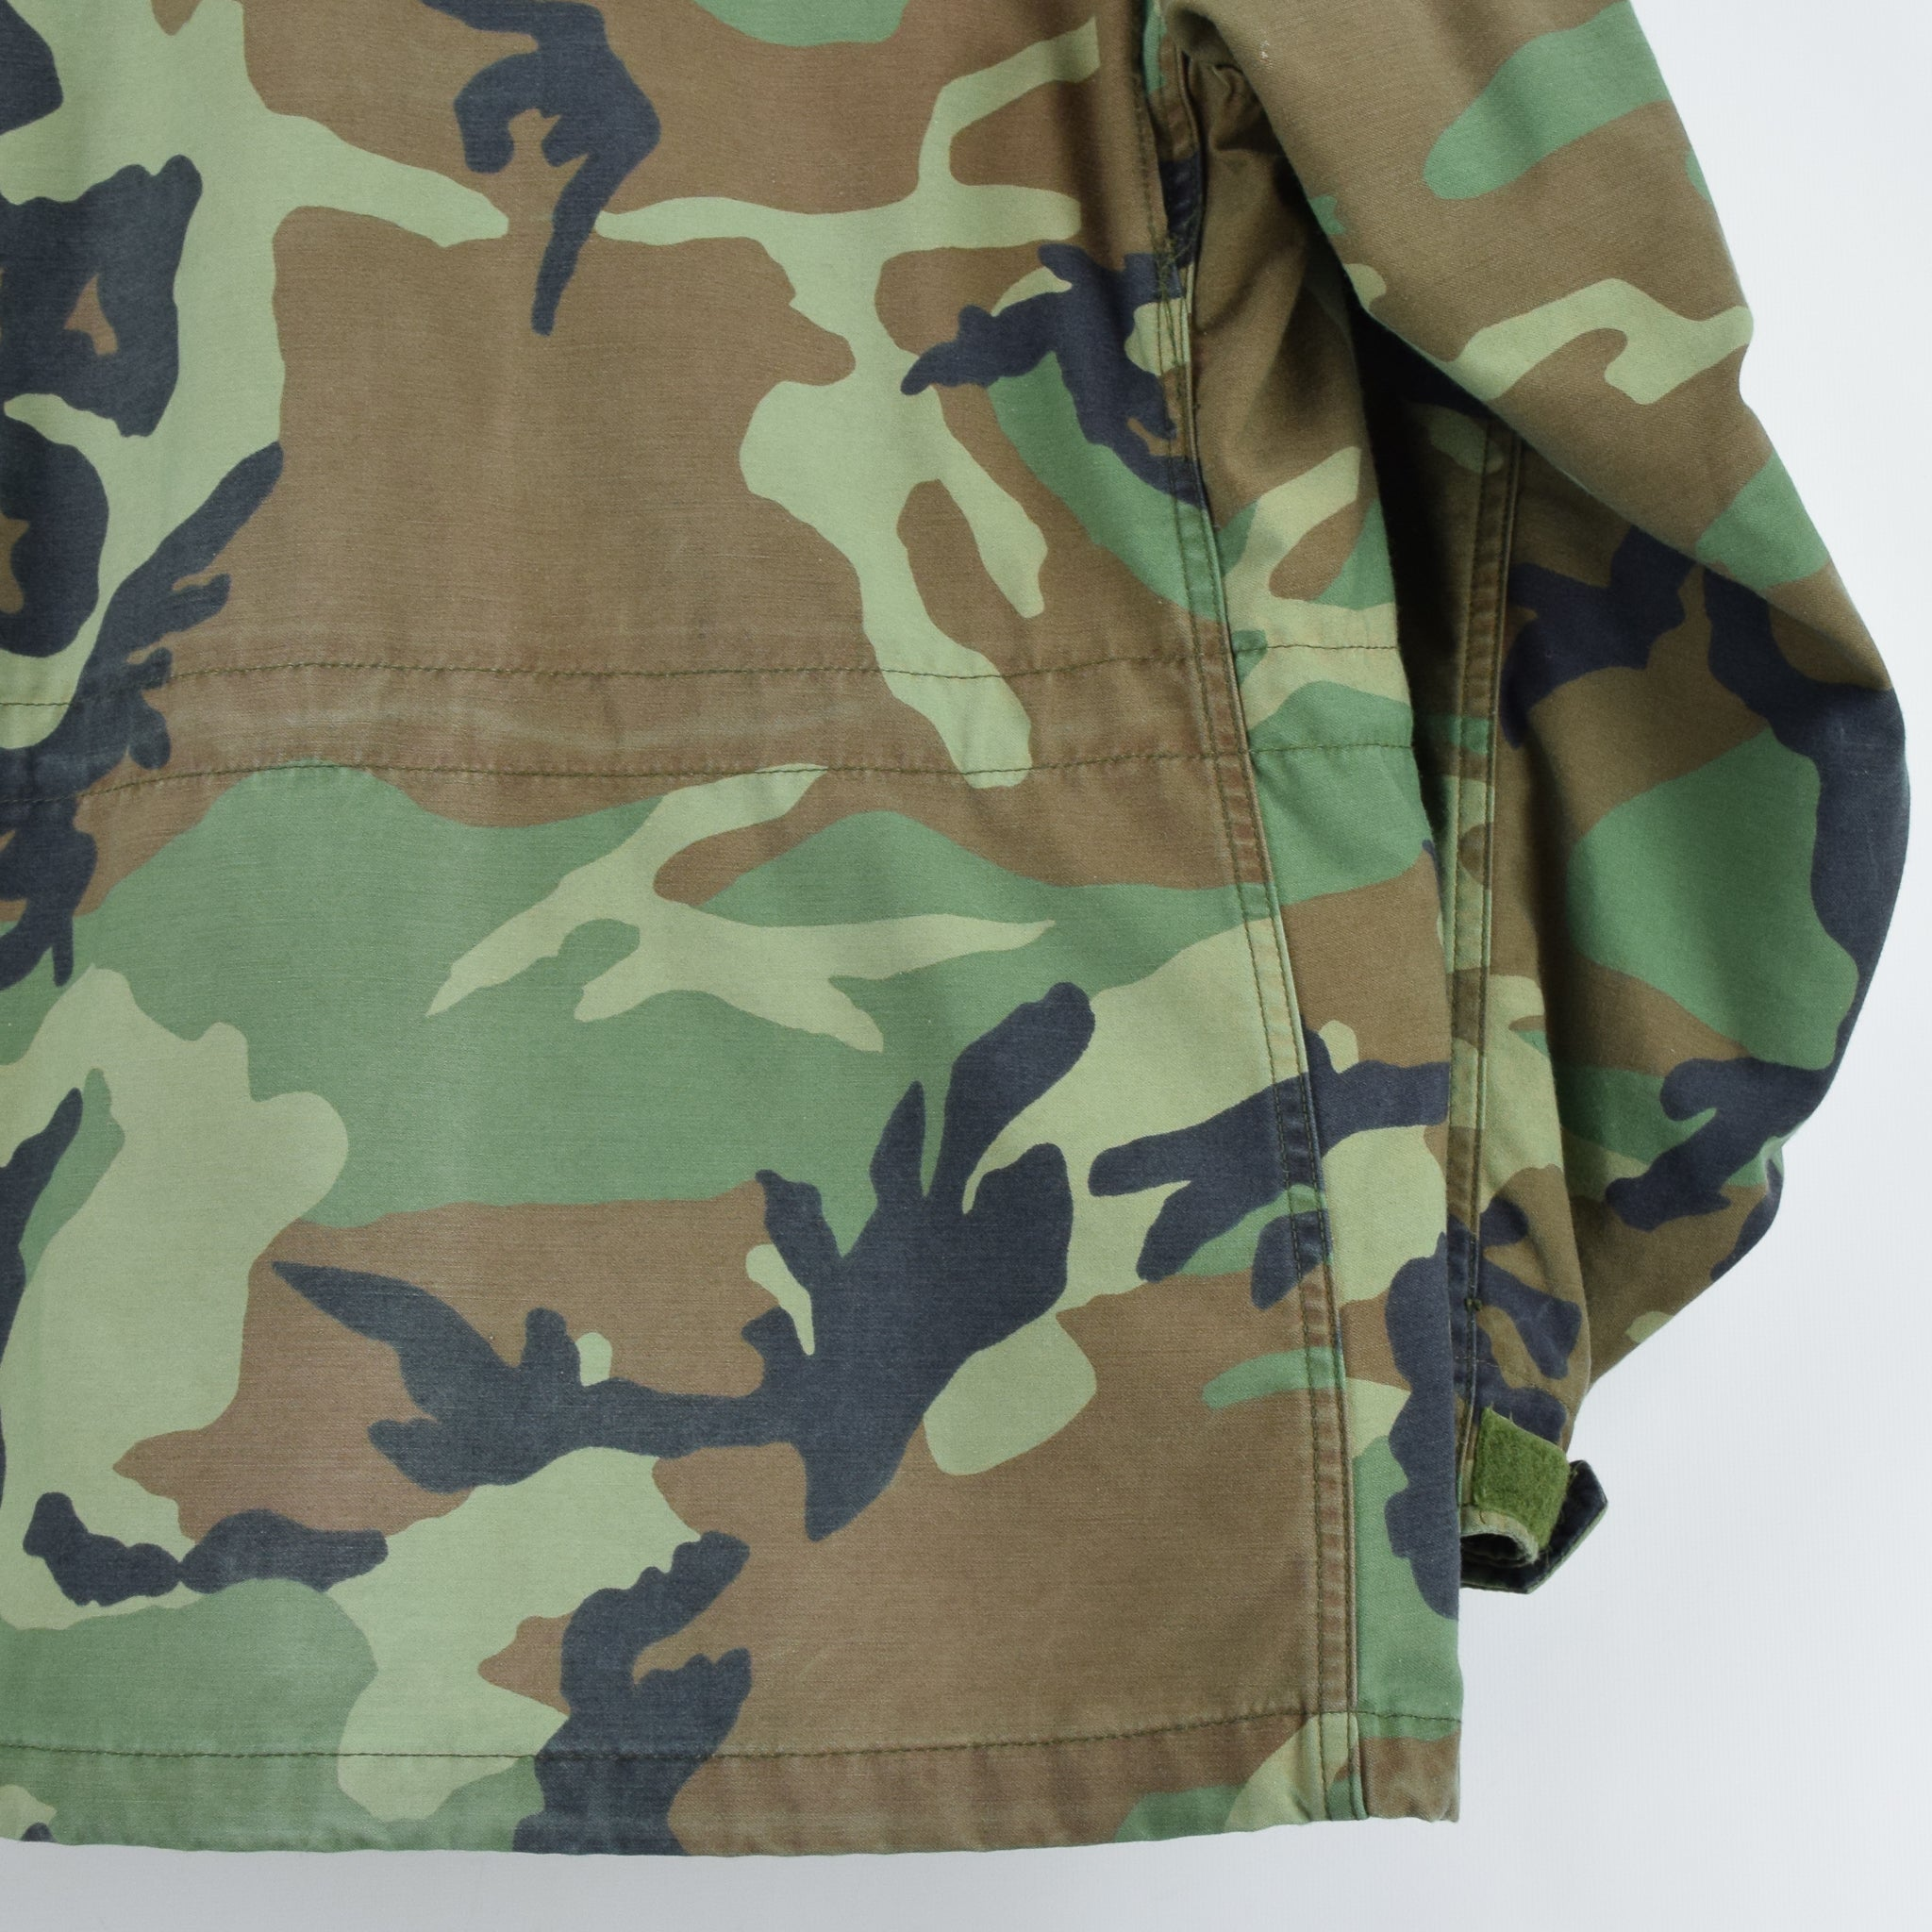 Vintage 90s M-65 Woodland Camouflage Field Coat US Army Cotton Military Jacket M back hem